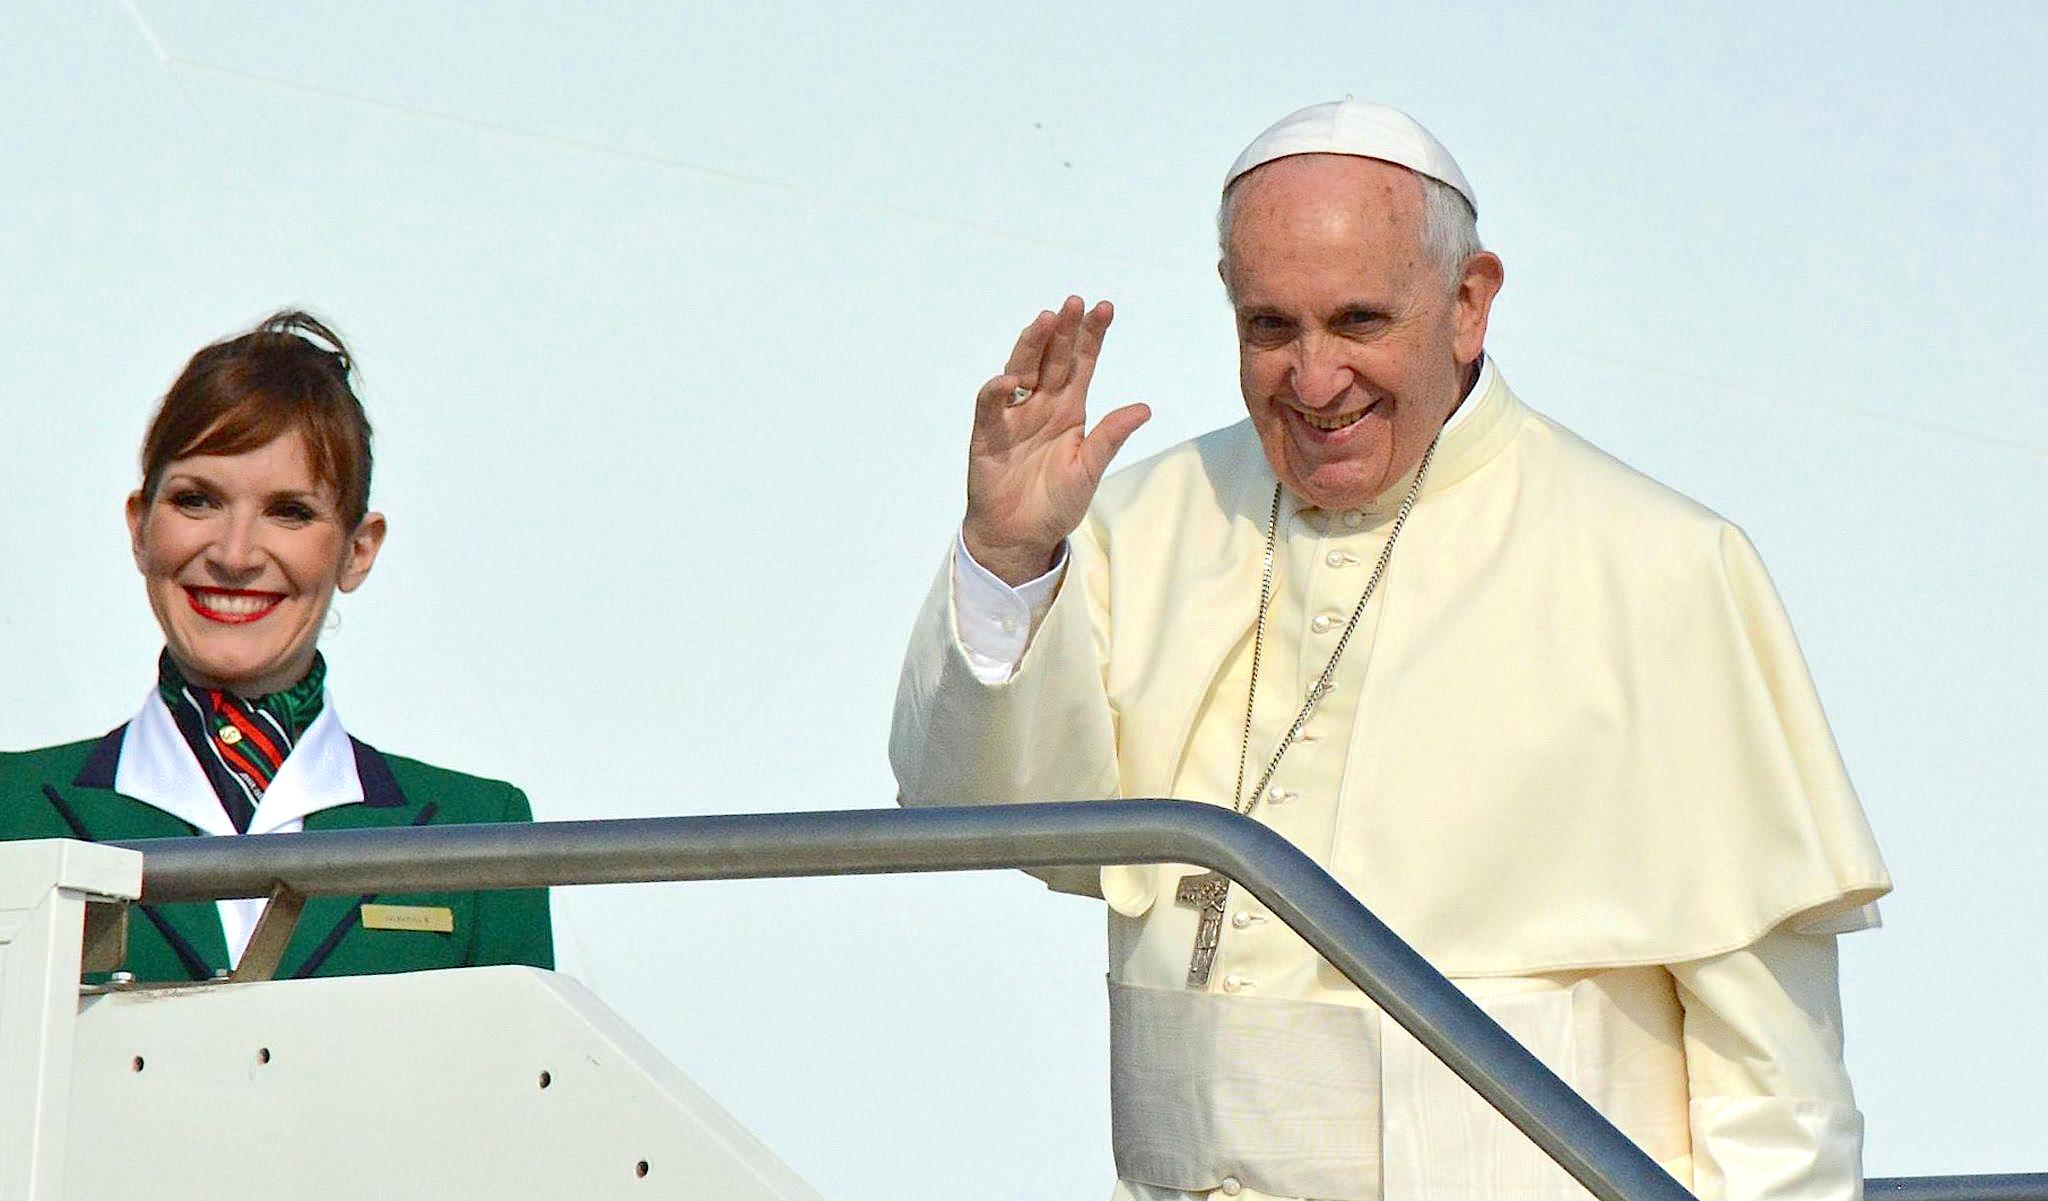 Pope Francis ready to leave Rome